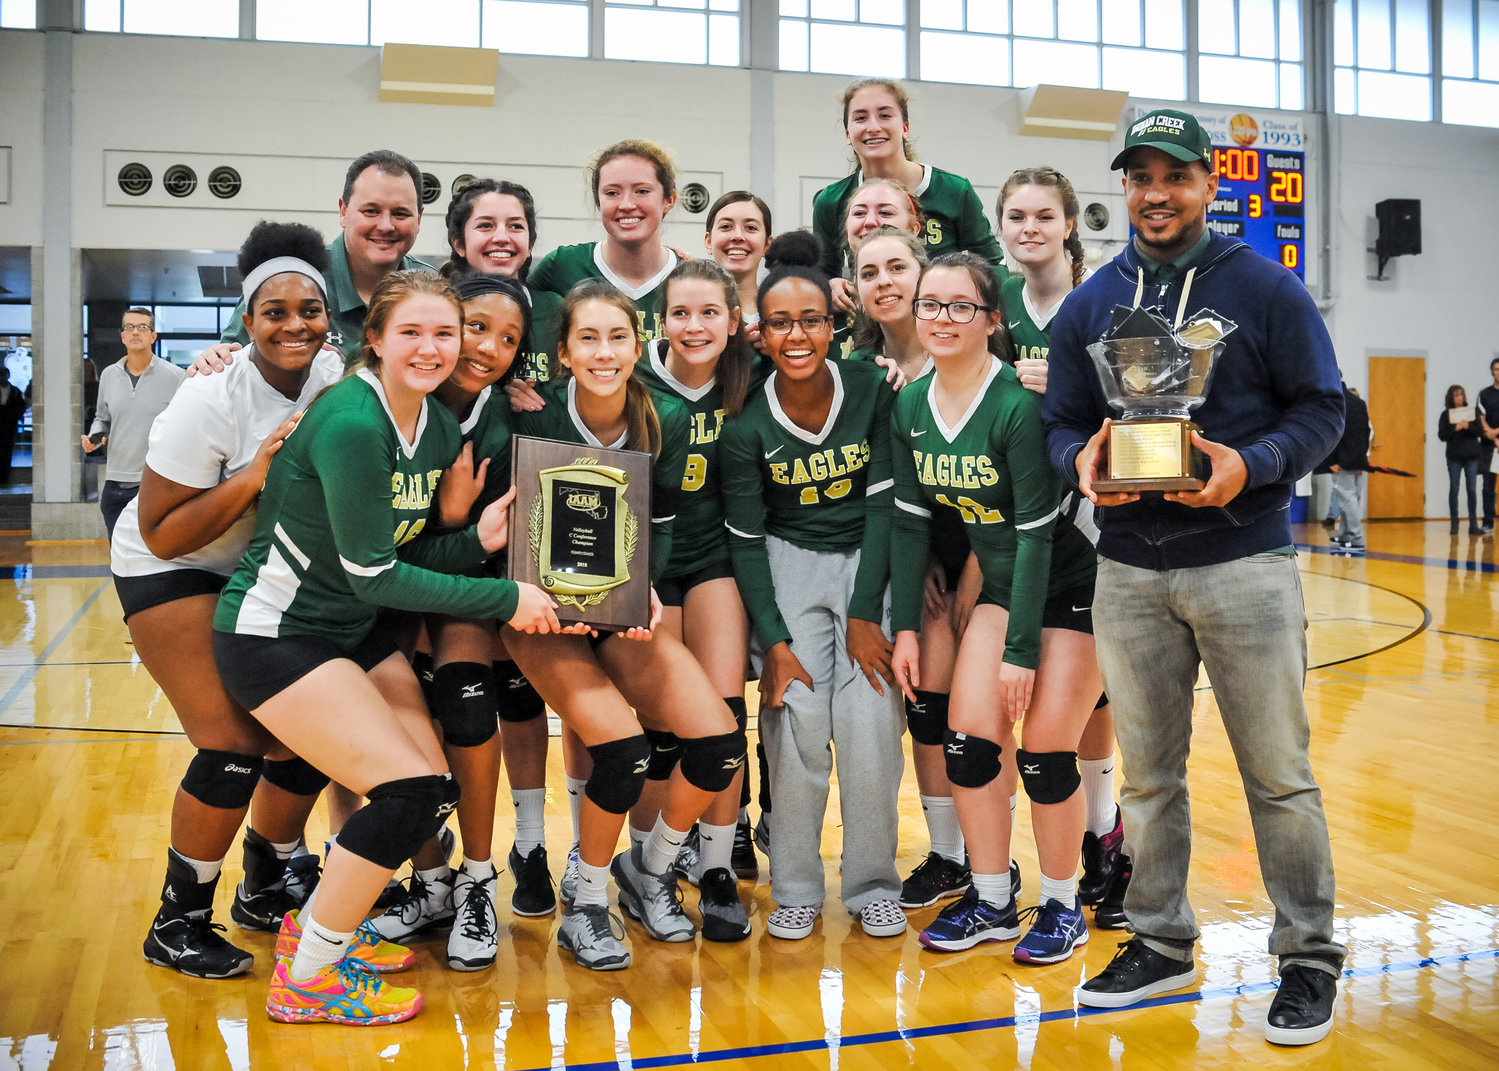 The Eagles are first-time champions of the IAAM C Conference after defeating Friends School in three sets at Goucher College on October 27. Competing as a varsity team for the first time this season, Indian Creek won the championship and finished 10-1 overall.